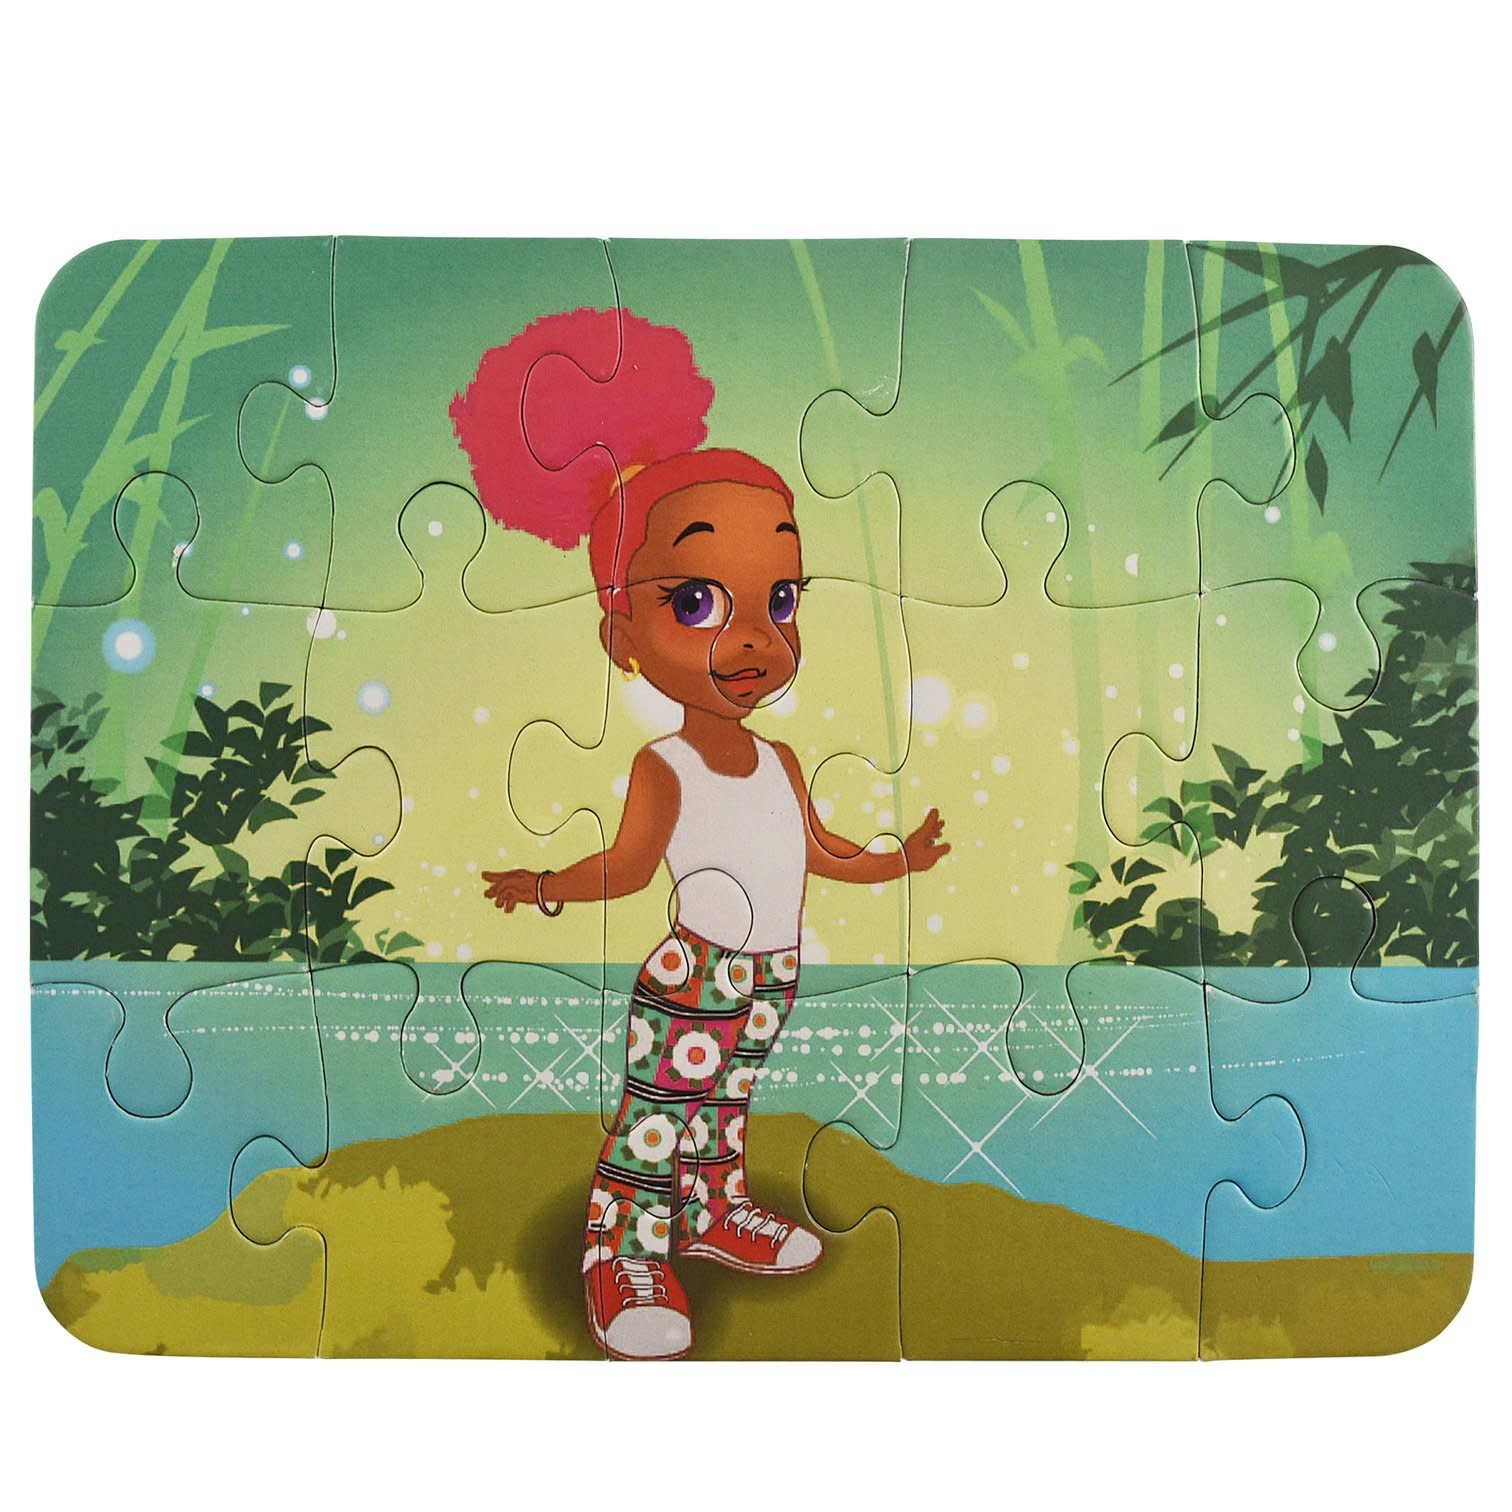 Puzzle and Bloom Summer: The Island Girl Puzzle (15 Piece Puzzle)